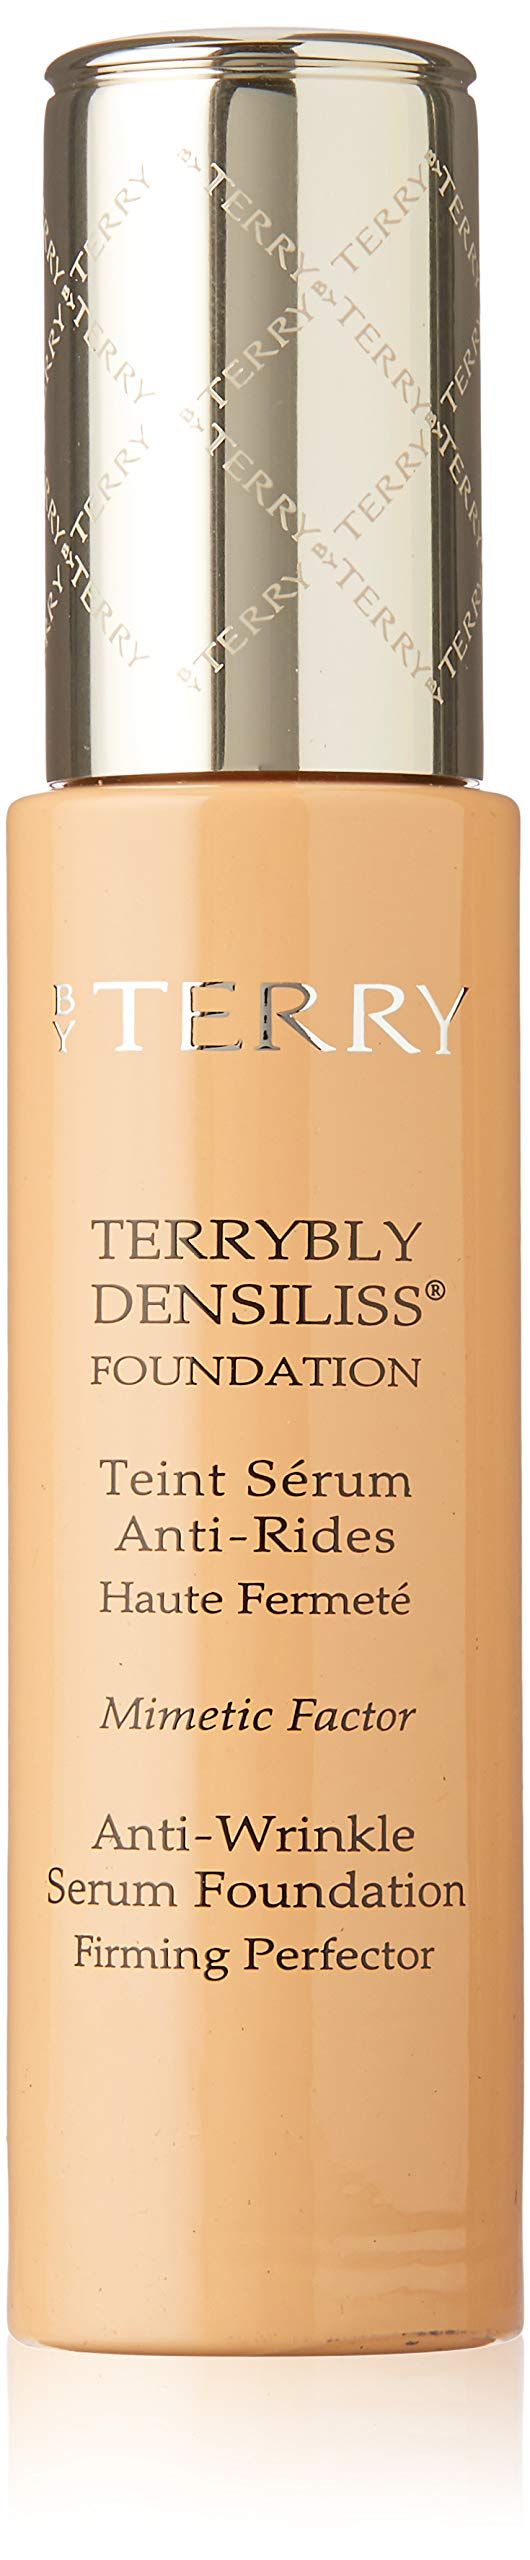 By Terry Terrybly Densiliss Wrinkle Control Serum Foundation, No. 7.5 Honey Glow, 1 Ounce